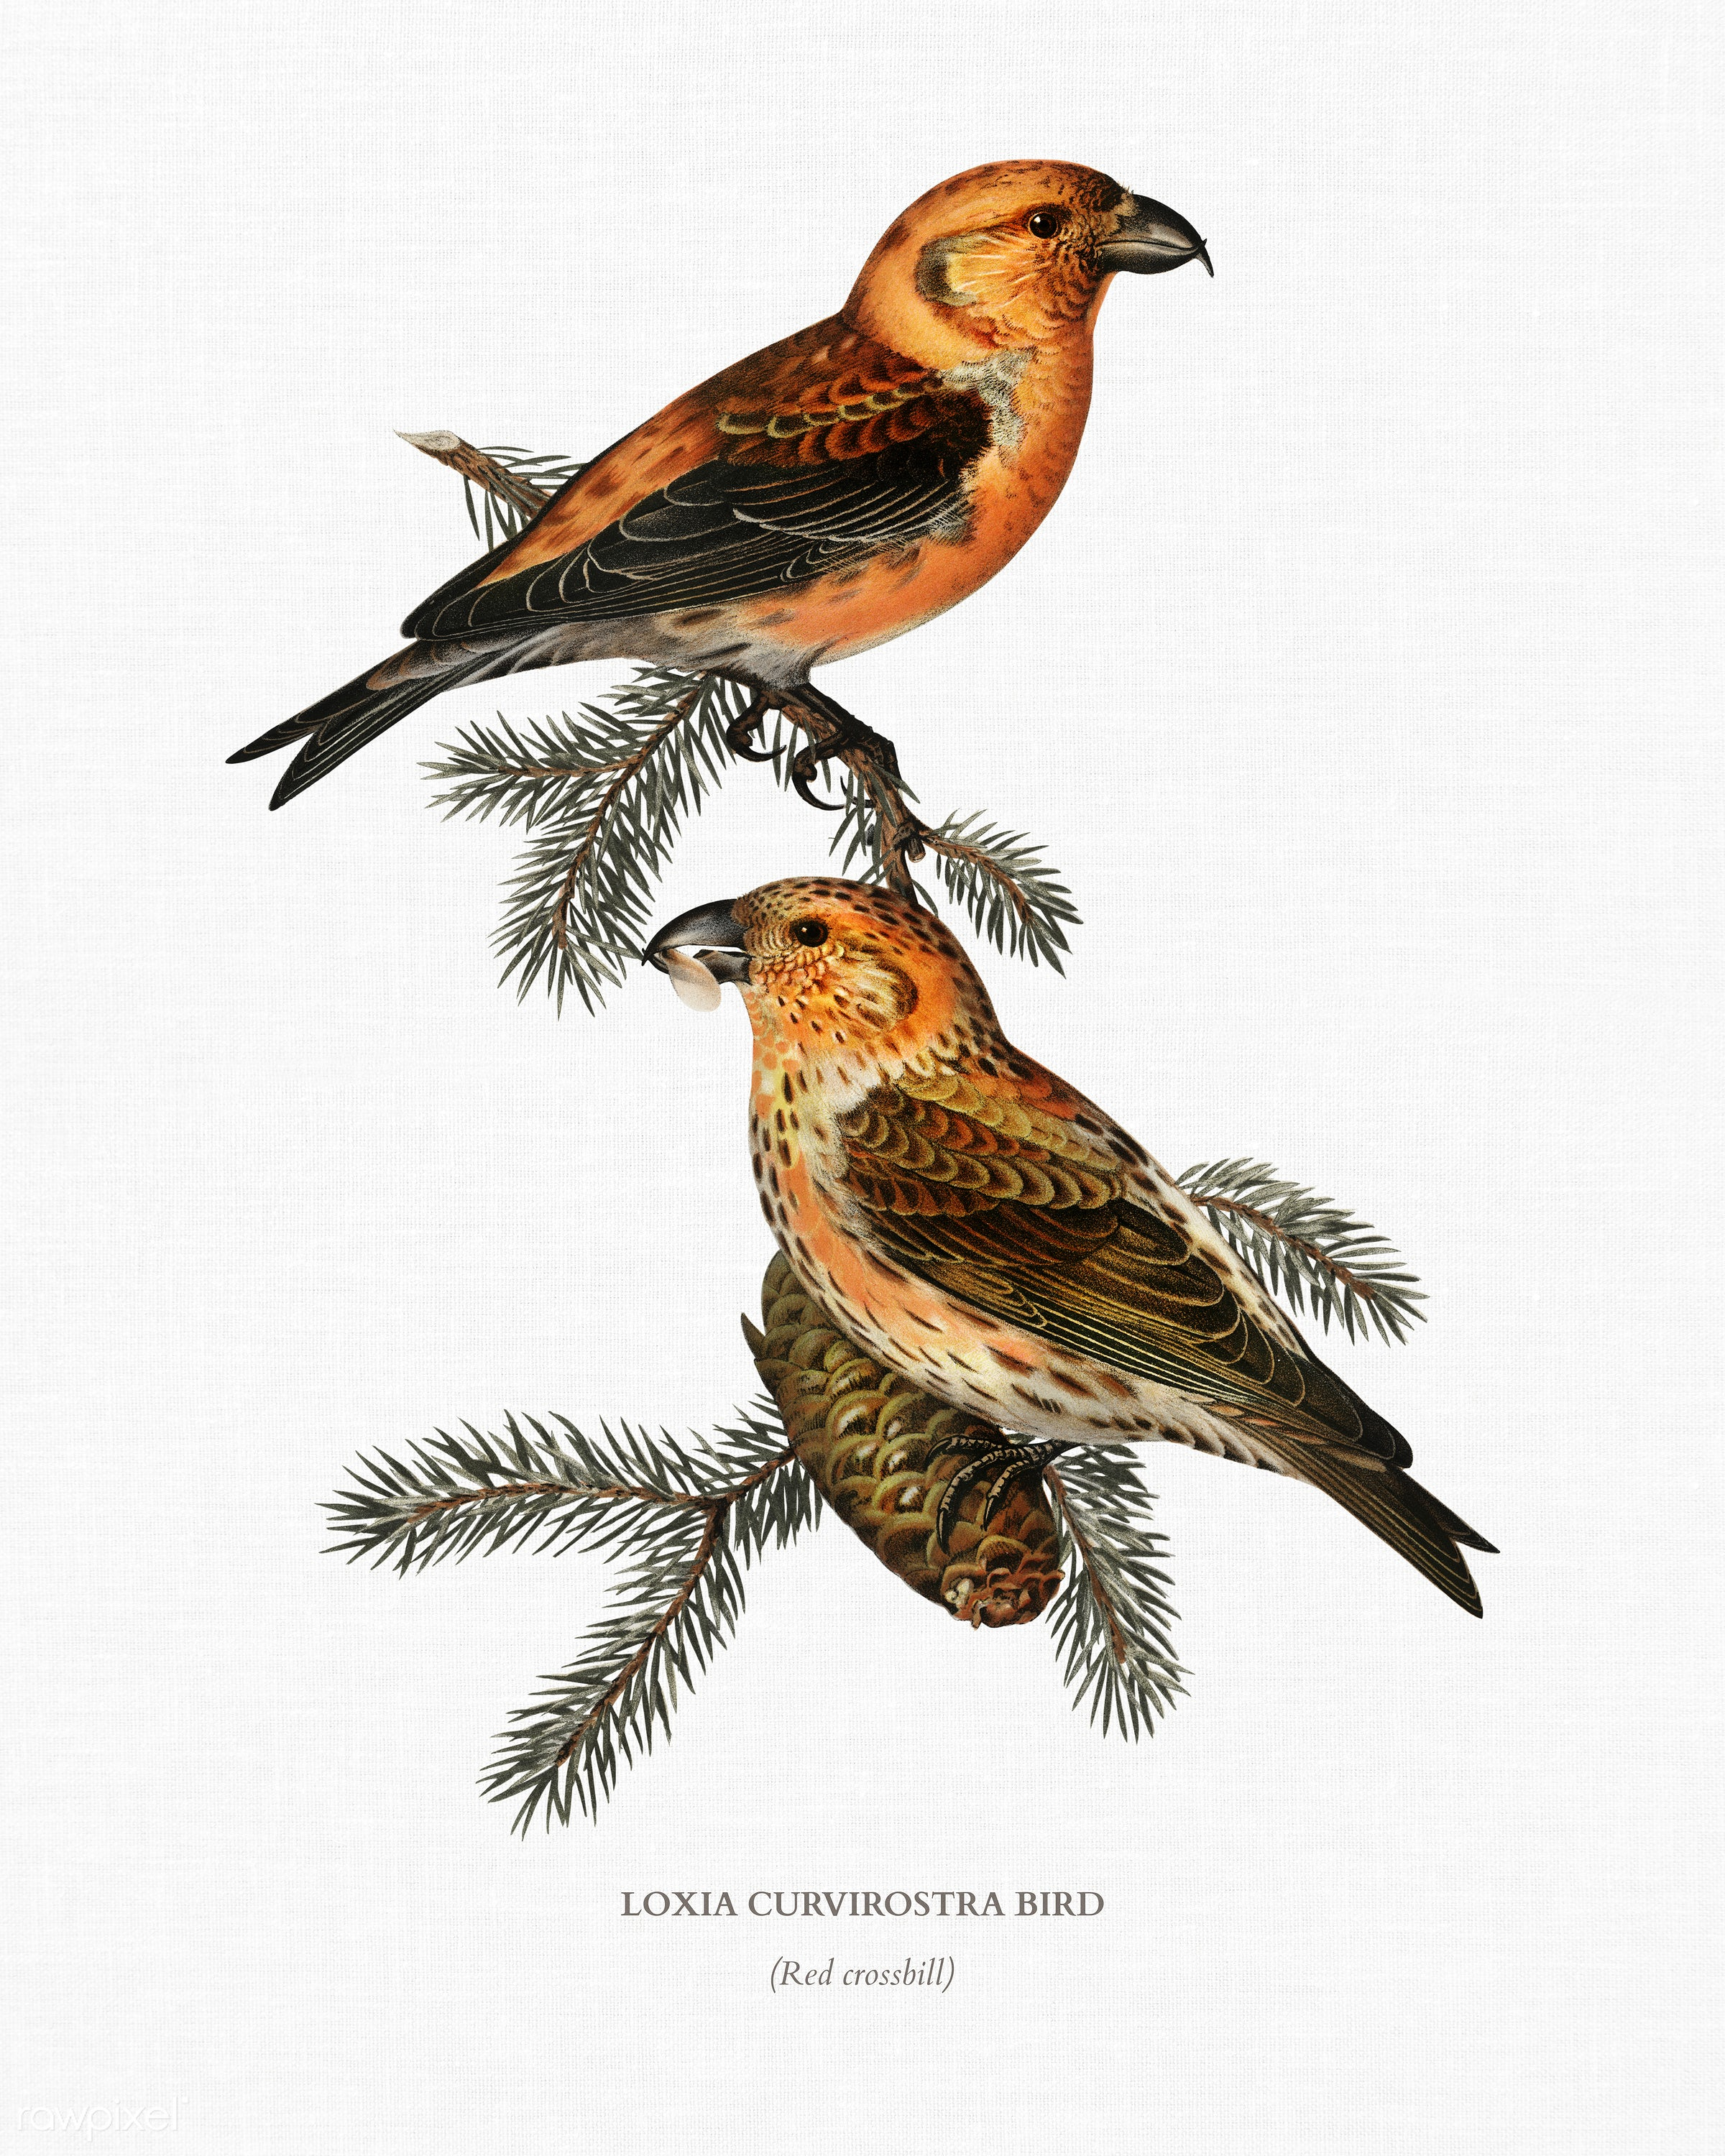 Red crossbill (Loxia curvirostra bird) illustrated by the von Wright brothers. Digitally enhanced from our own 1929 folio...